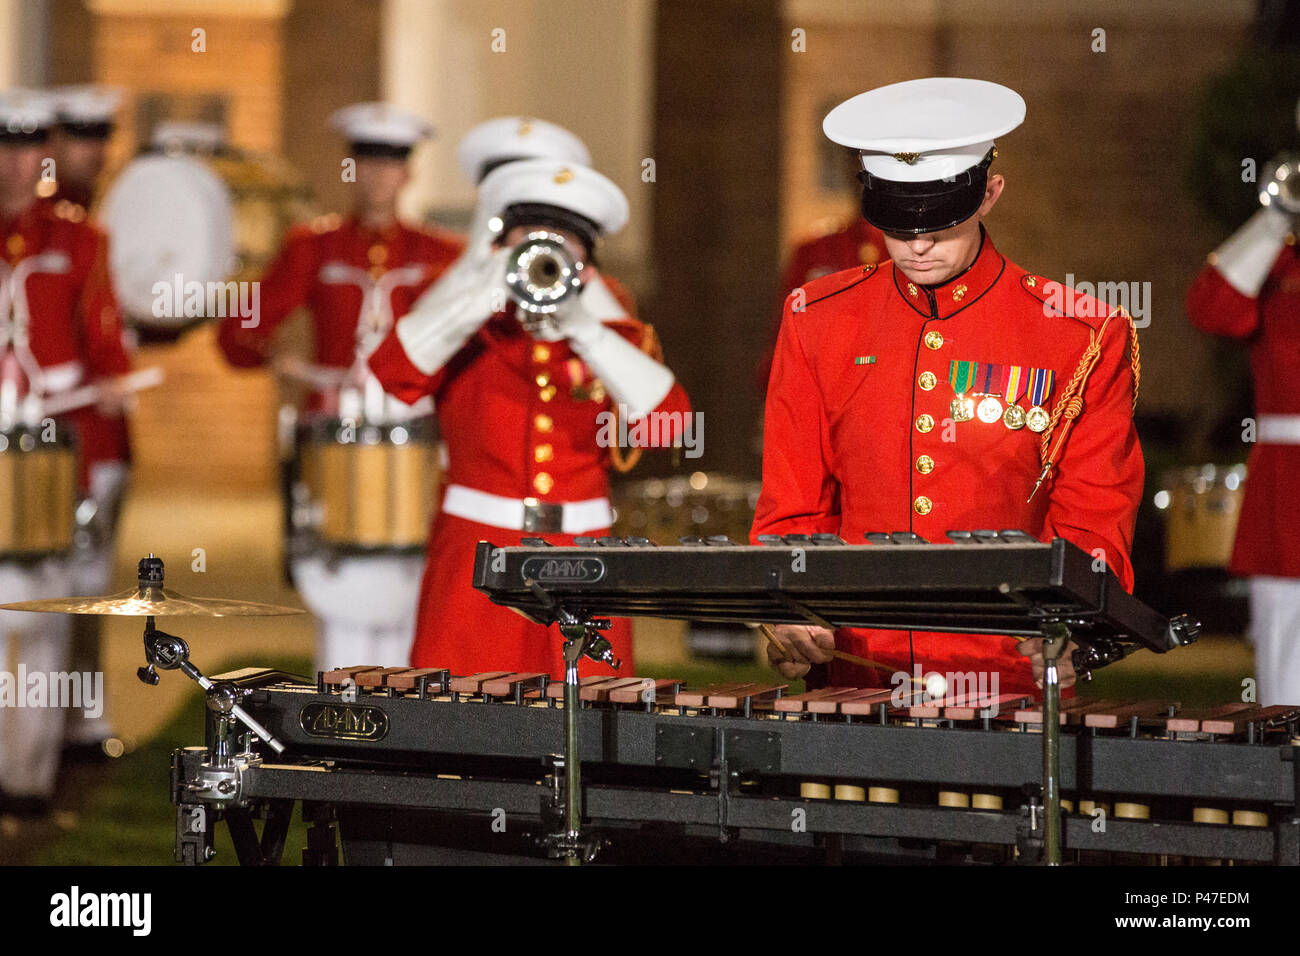 U.S. Marines with the Drum and Bugle Corps perform during the evening parade at Marine Barracks Washington, Washington, D.C., June 24, 2016. Evening parades are held as a means of honoring senior officials, distinguished citizens and supporters of the Marine Corps. (U.S. Marine Corps photo by Pfc. Alex A. Quiles) Stock Photo